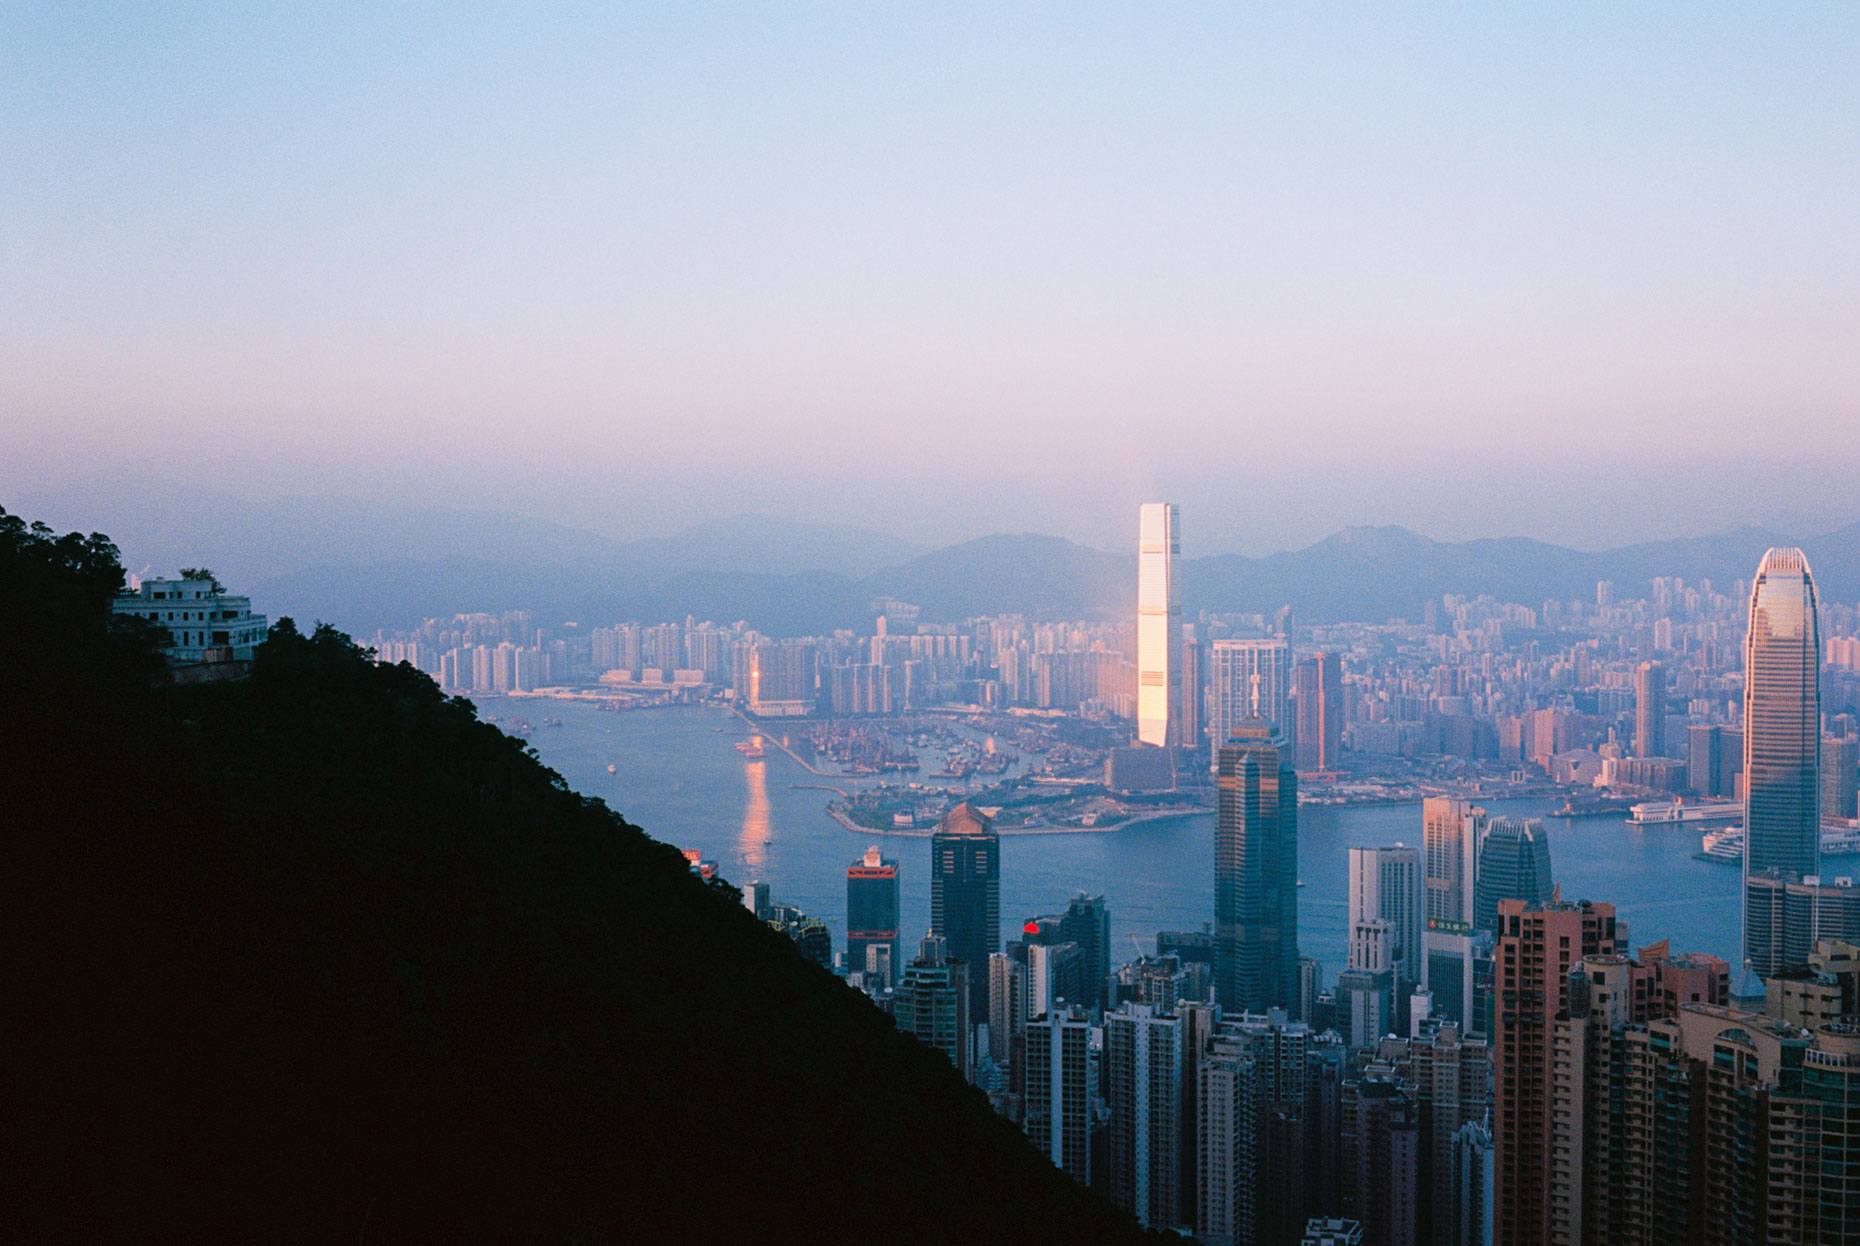 THE PEAK HONG KONG 2019